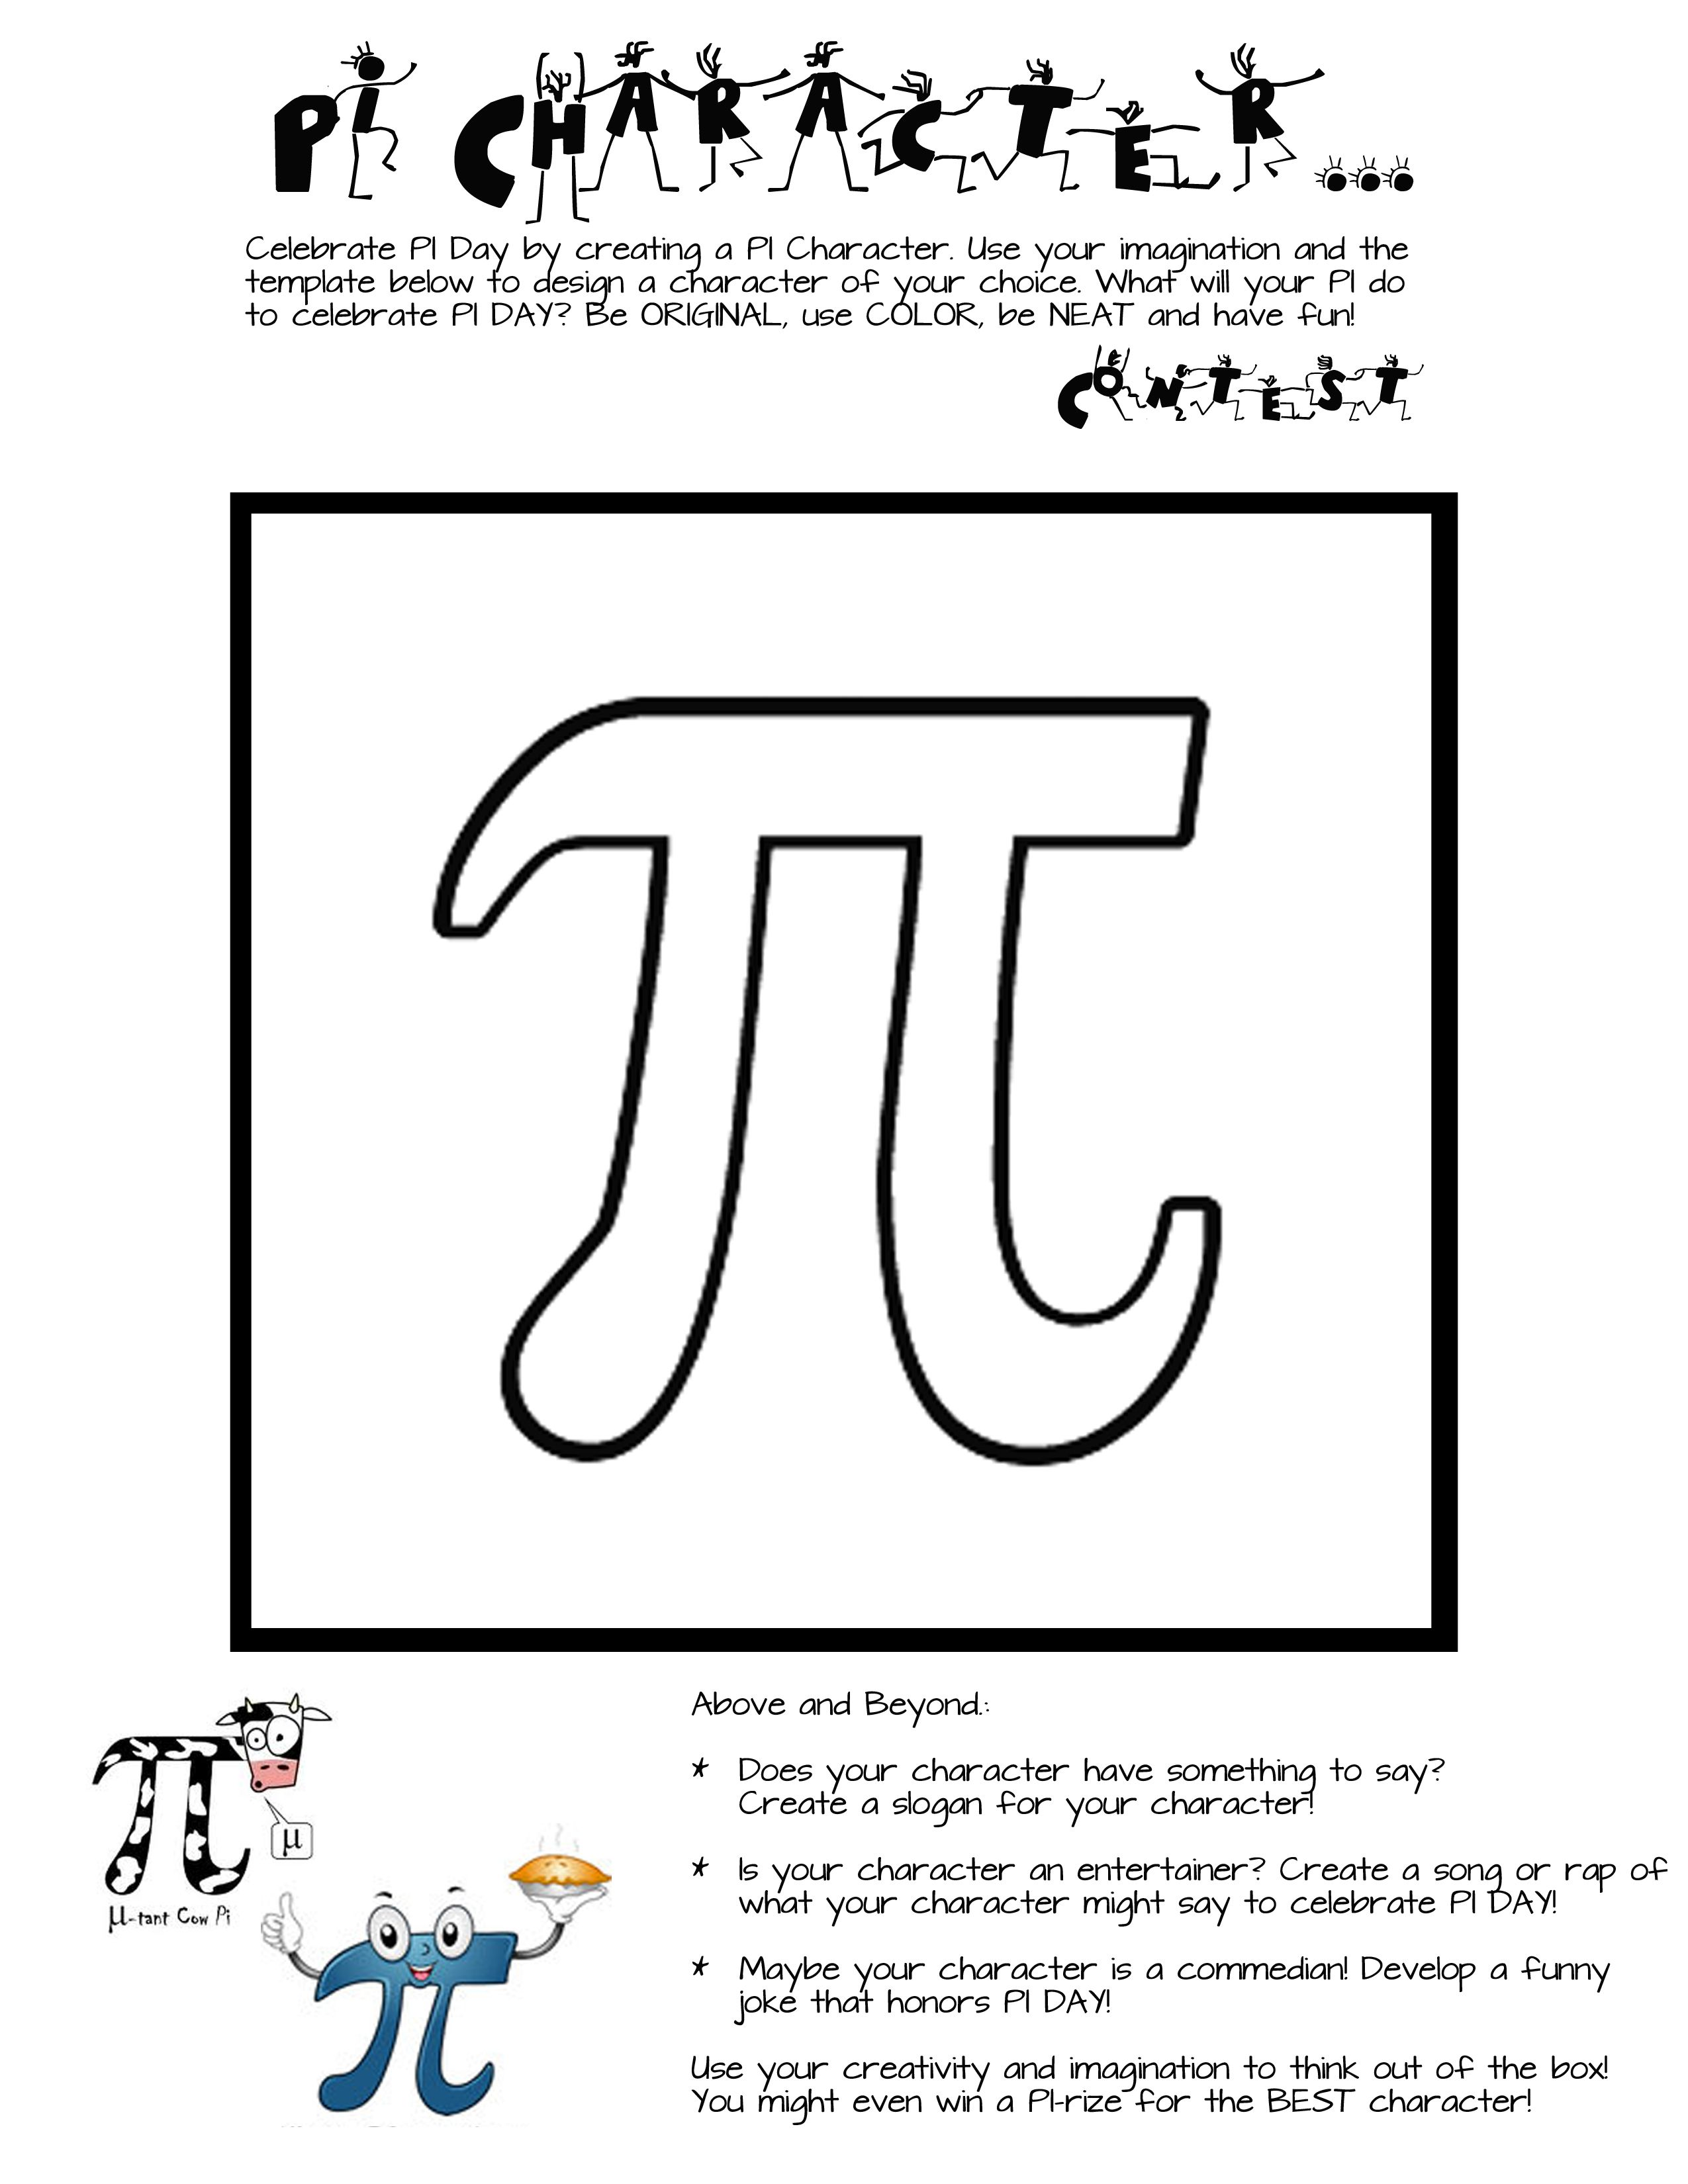 This Is The Pi Day Activity That I Created For My Middle